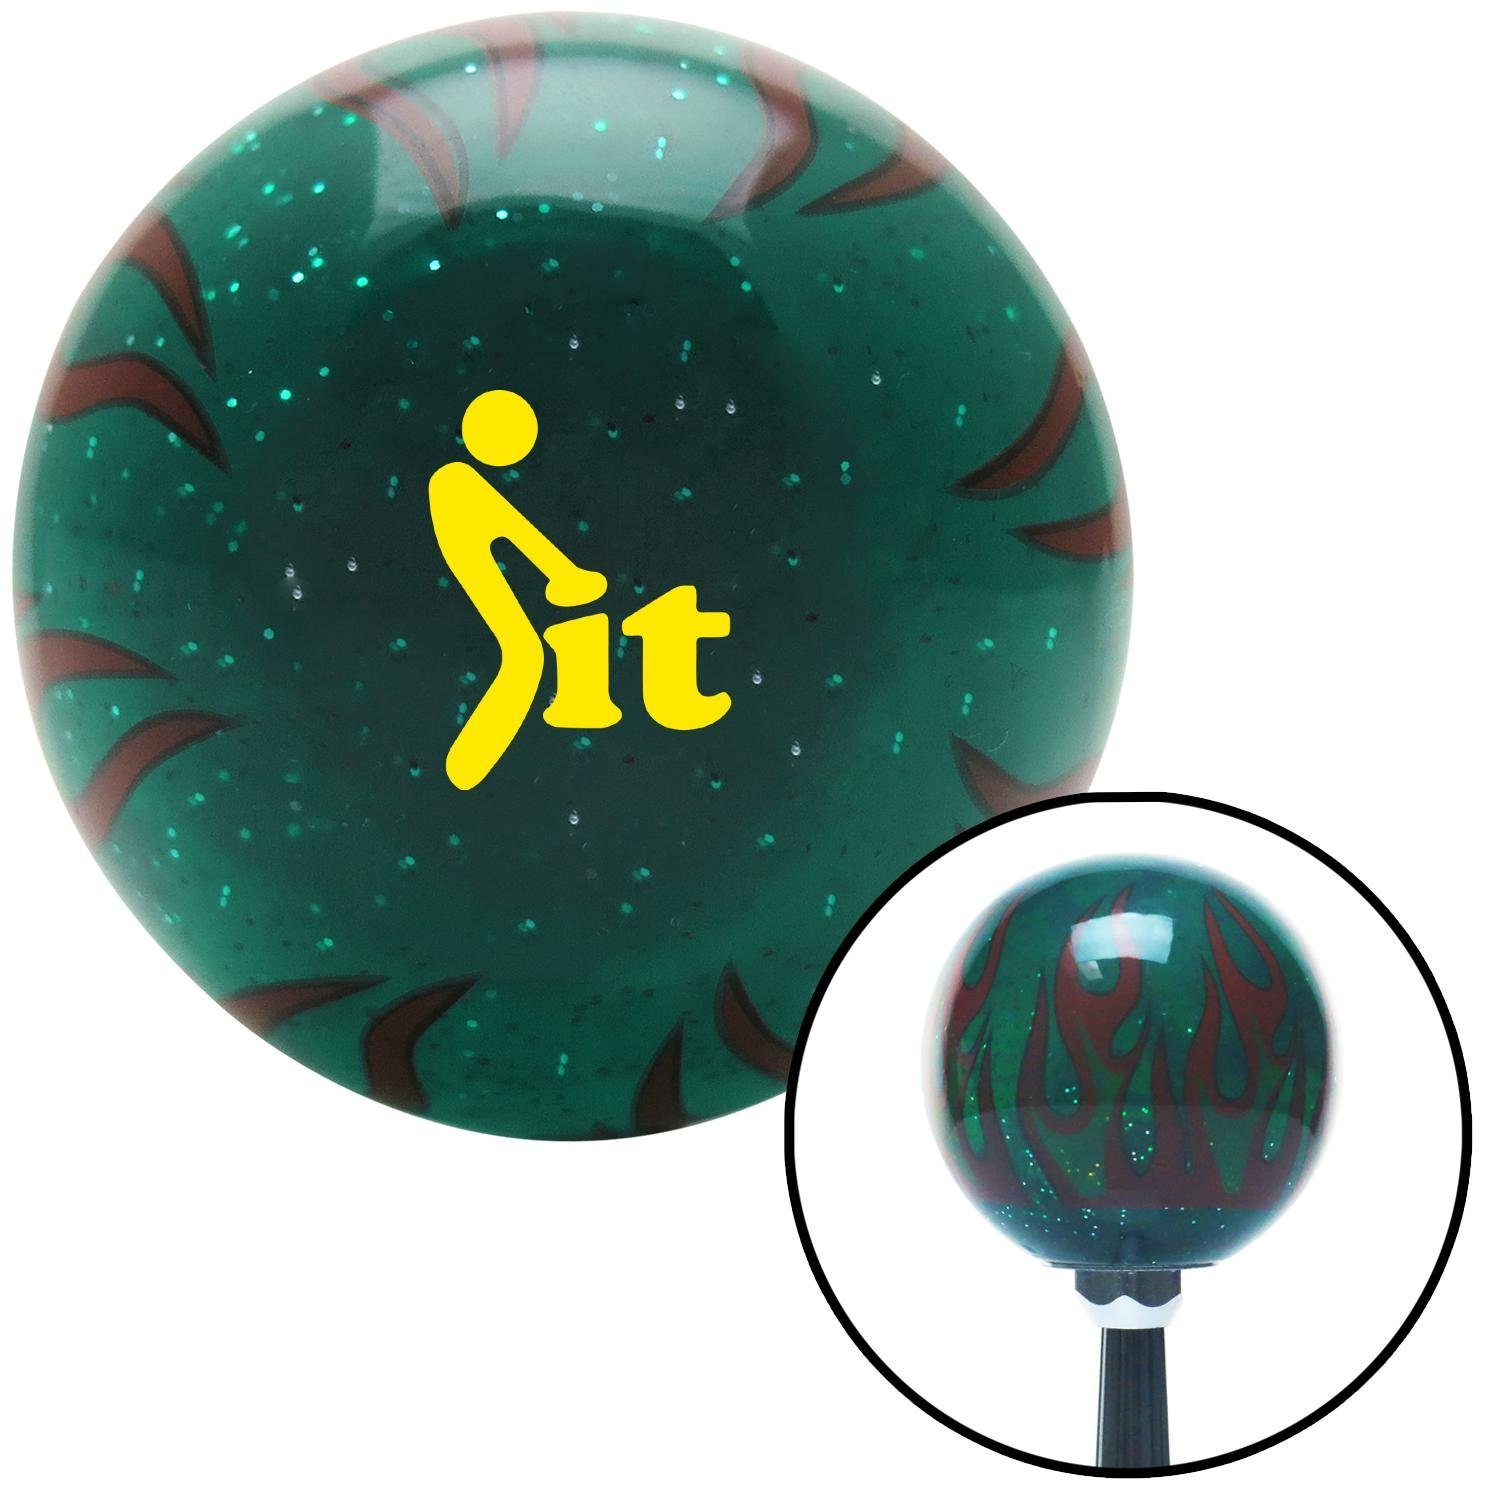 American Shifter 300523 Shift Knob Yellow FCK It Icon Green Flame Metal Flake with M16 x 1.5 Insert